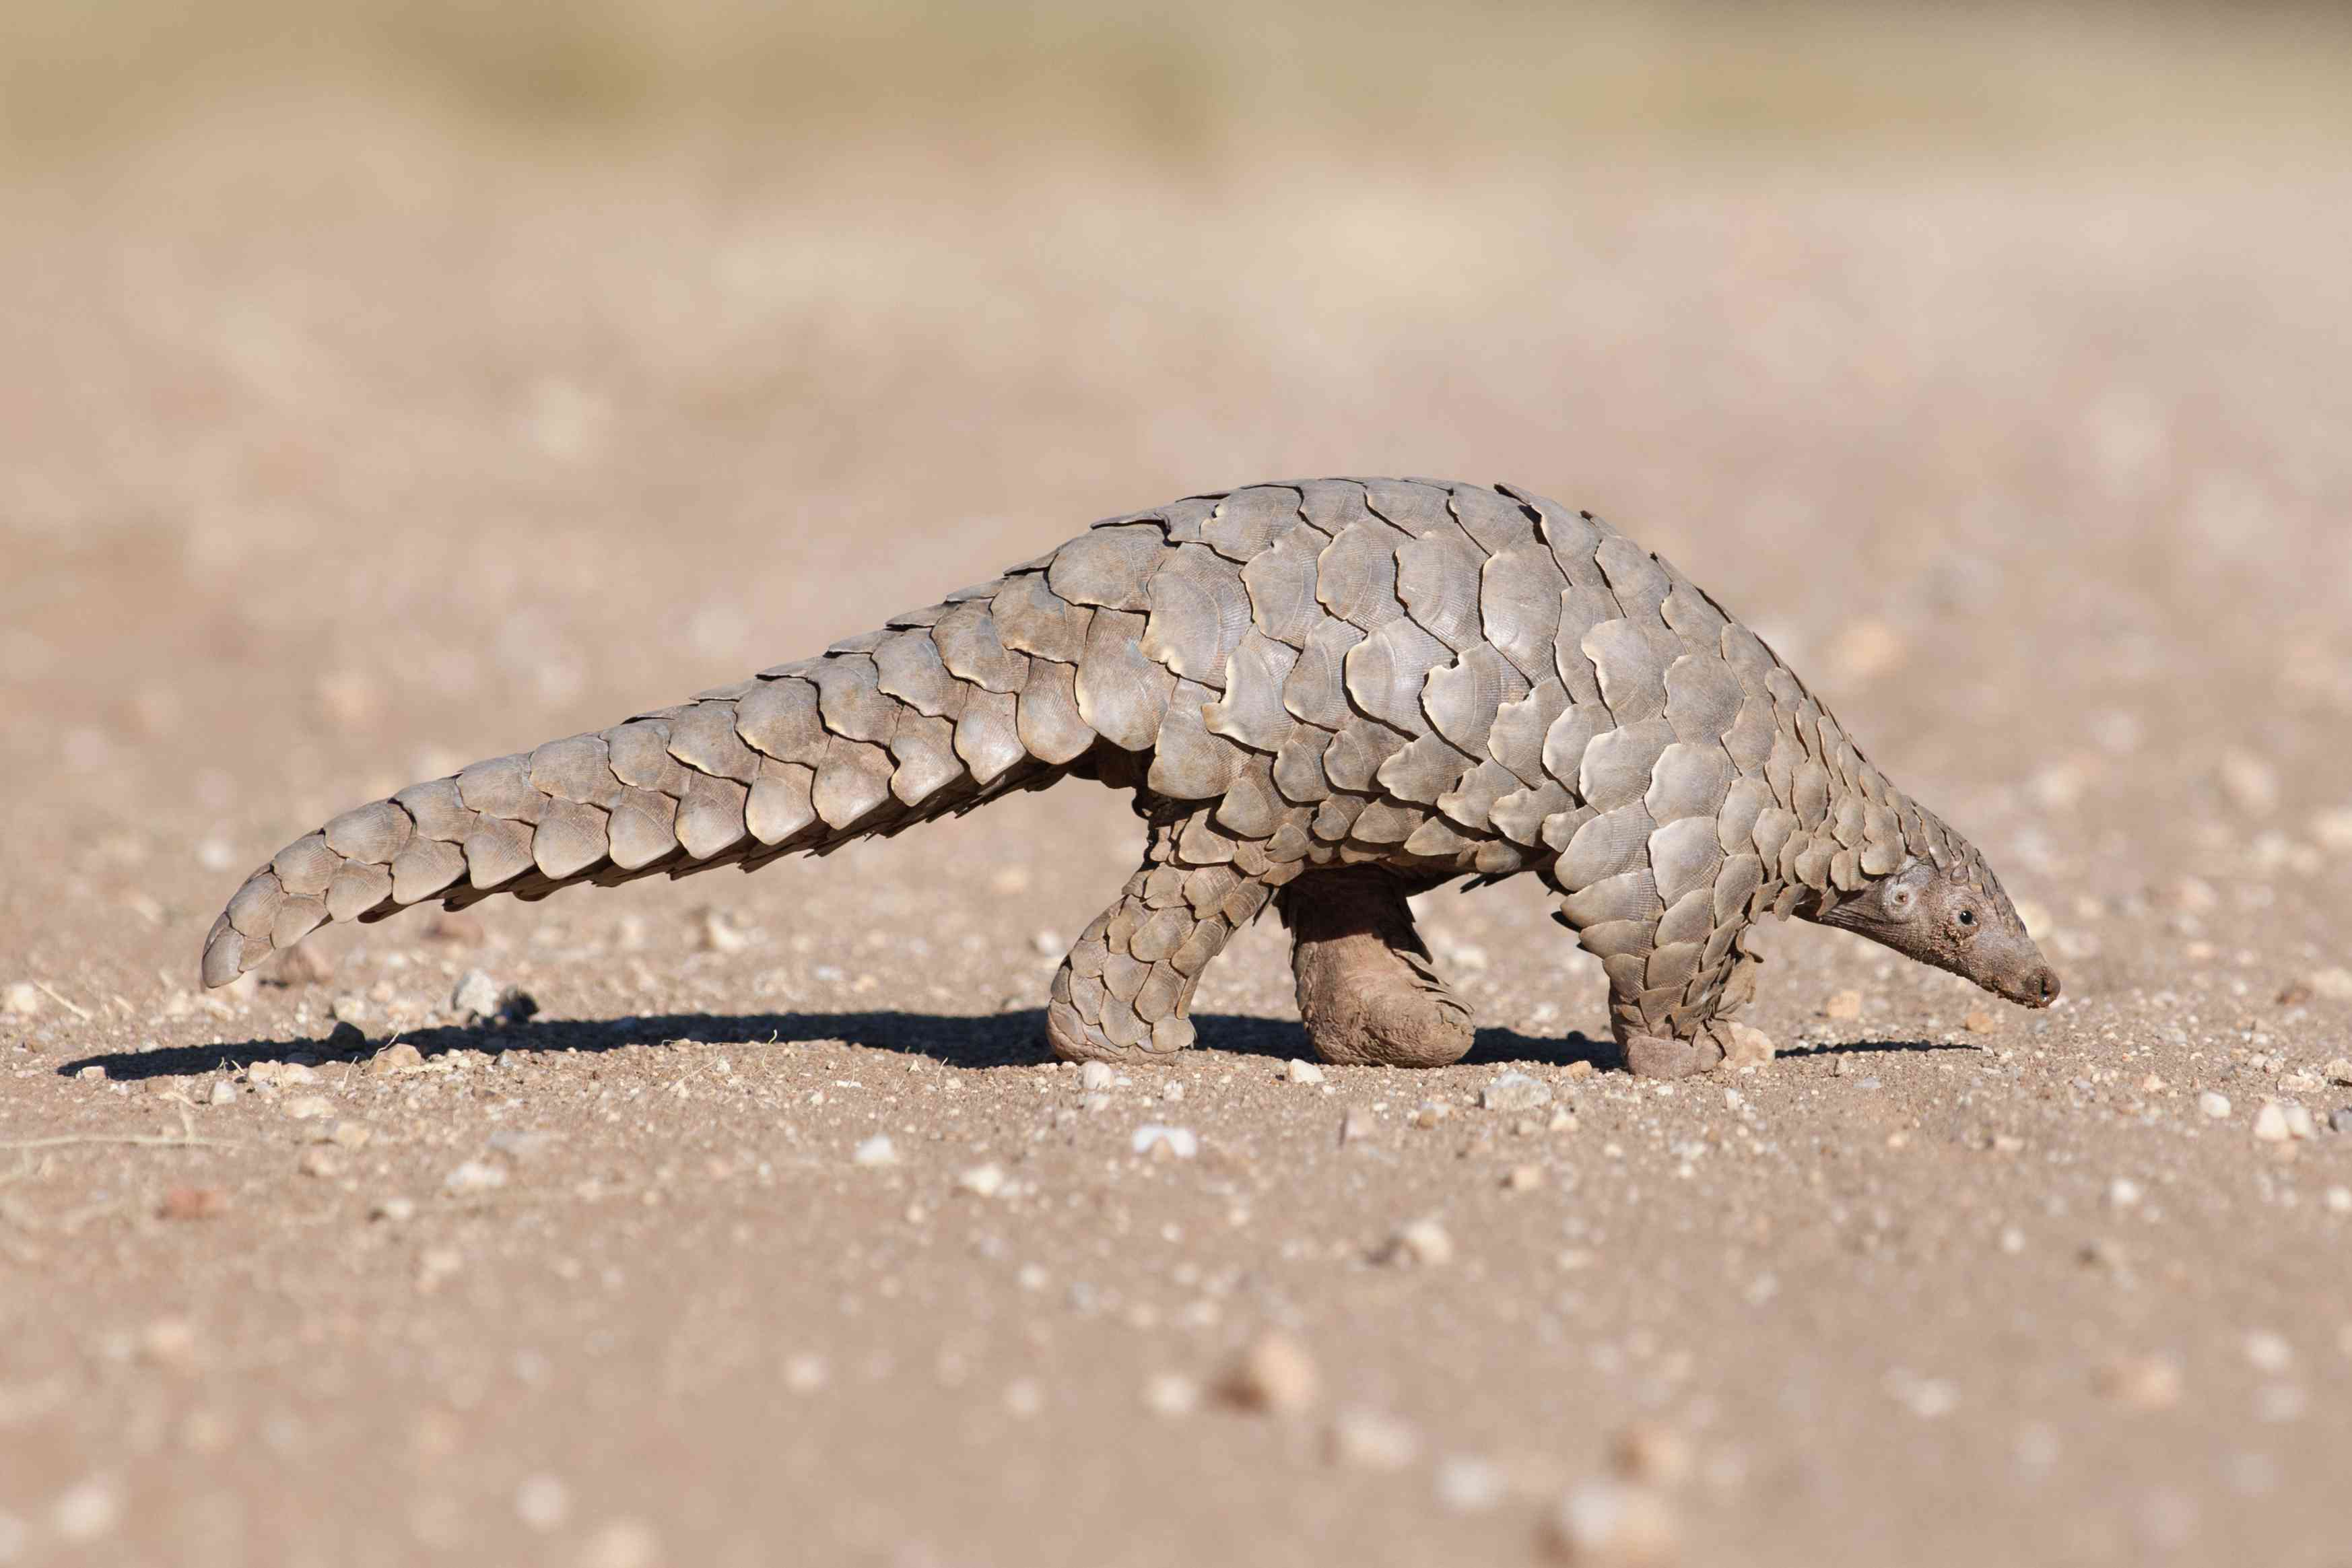 Pangolin on sandy ground hunting for ants